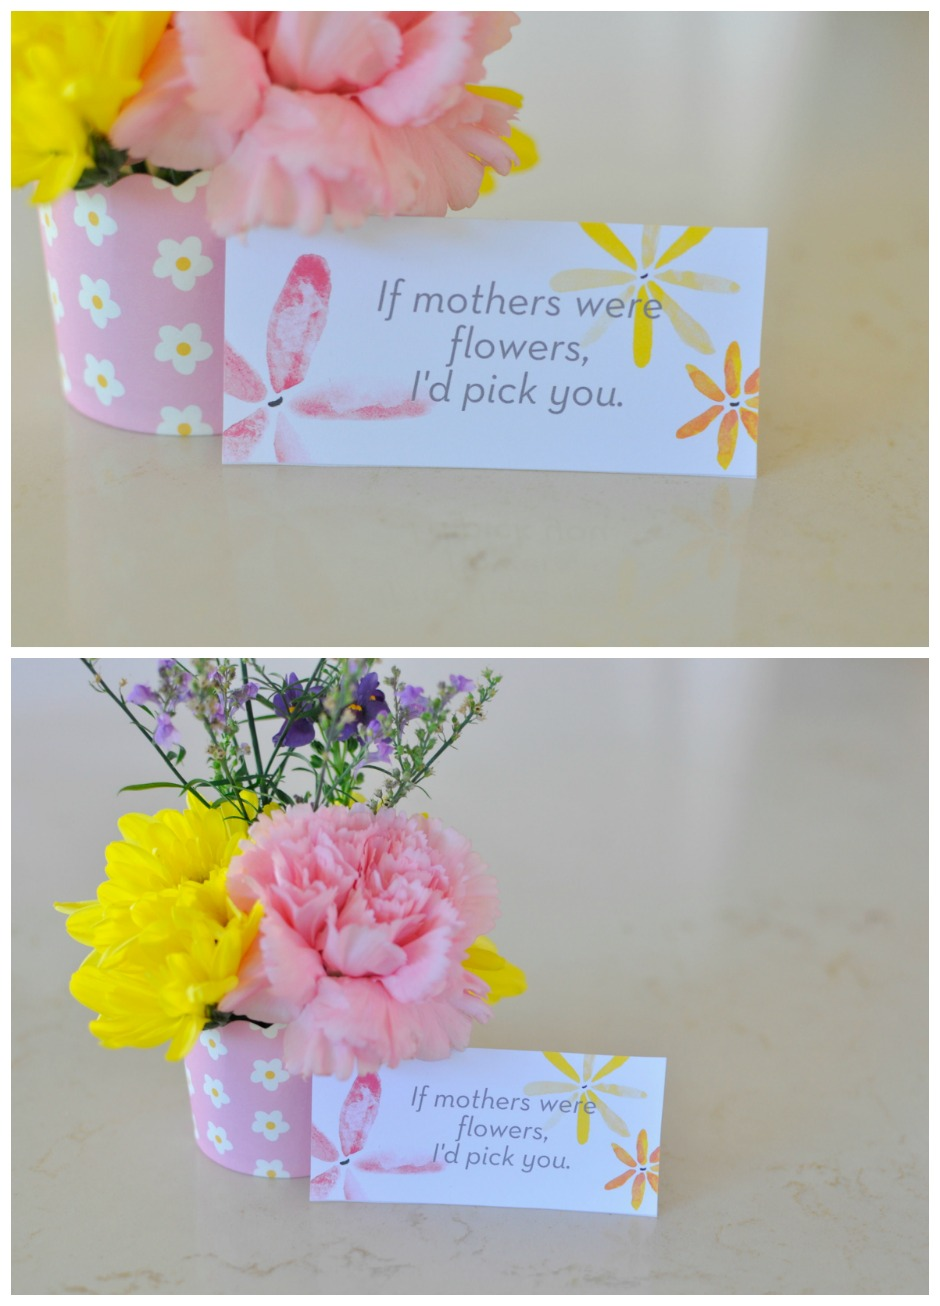 If mothers were flowers, I'd pick you printable card